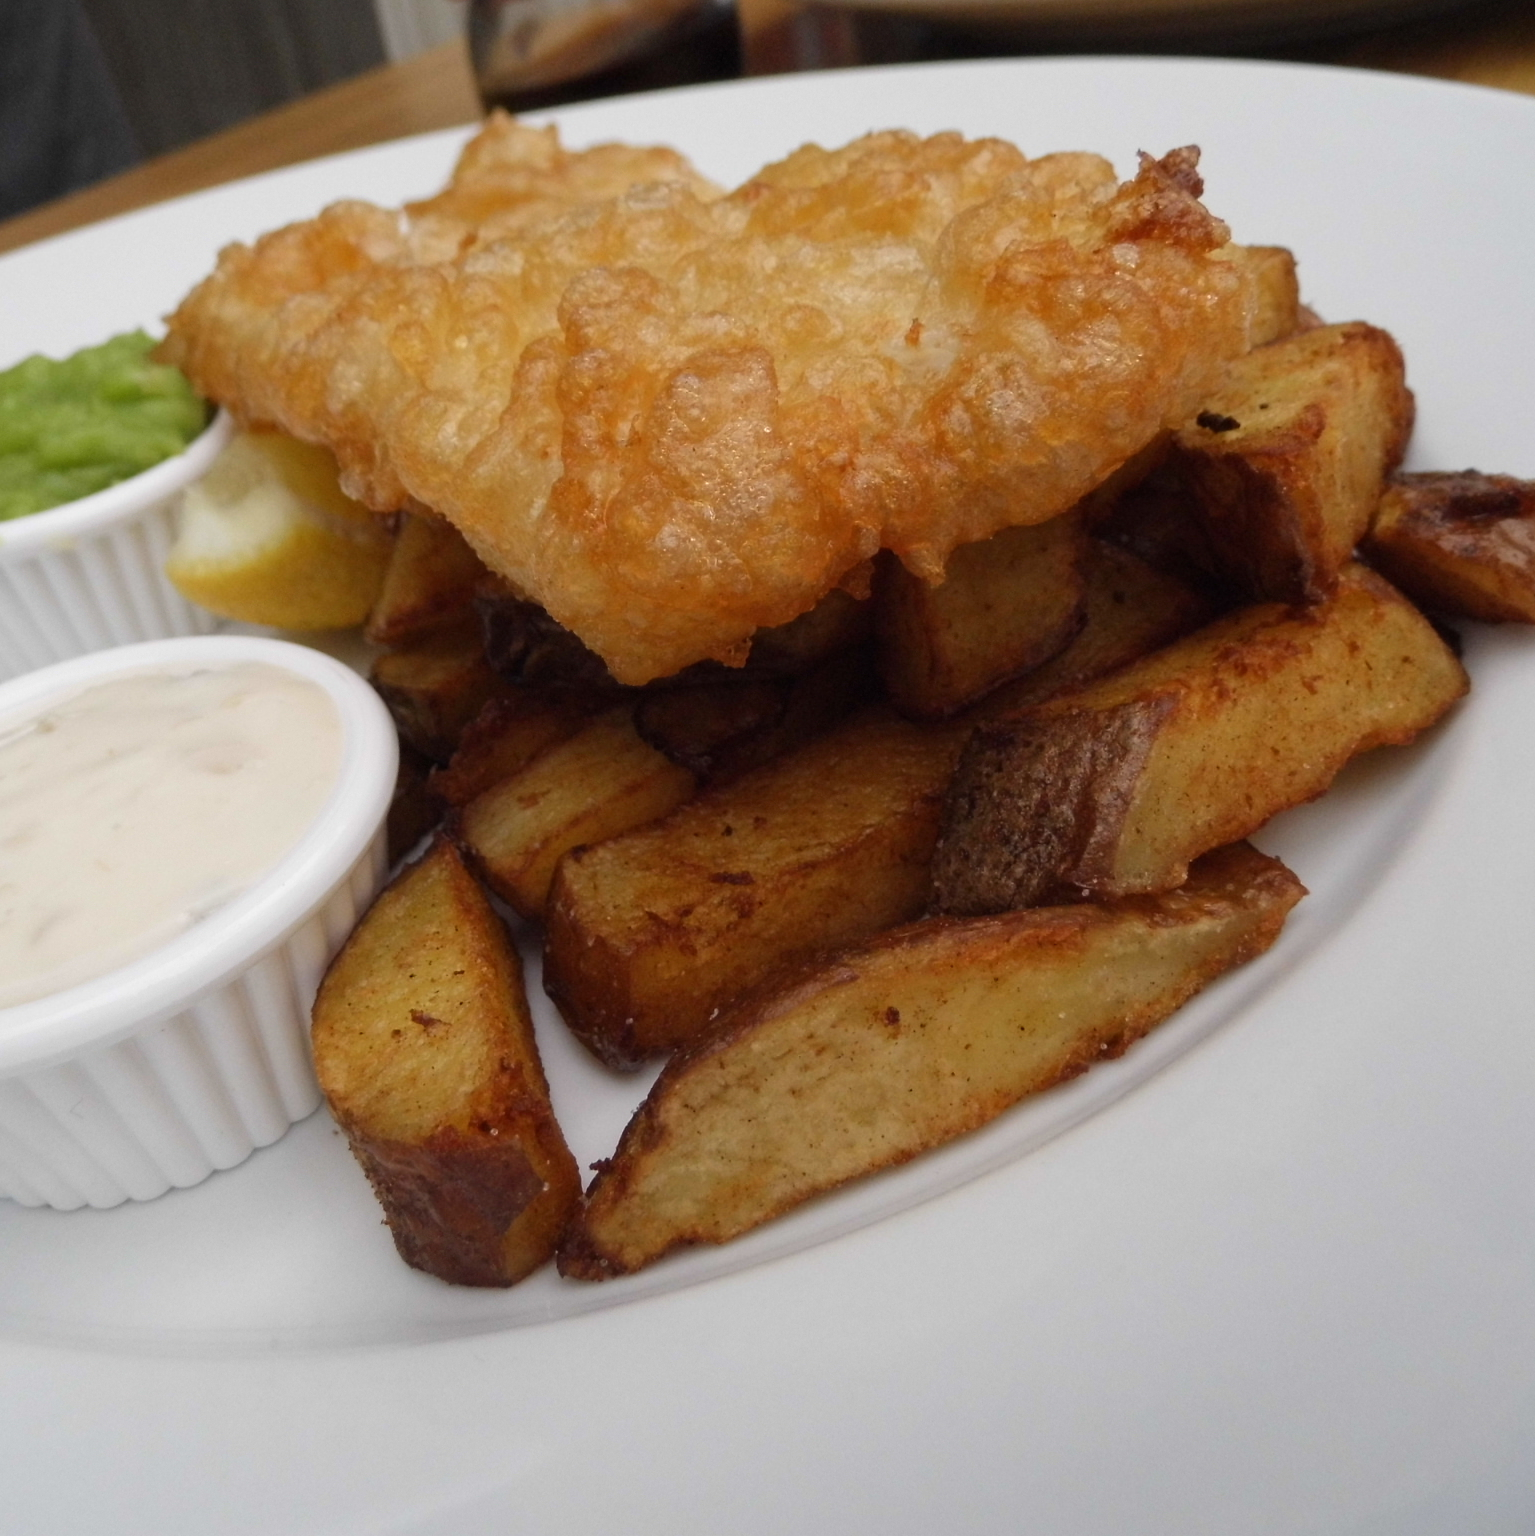 Tuillie Inn Fish and Chips